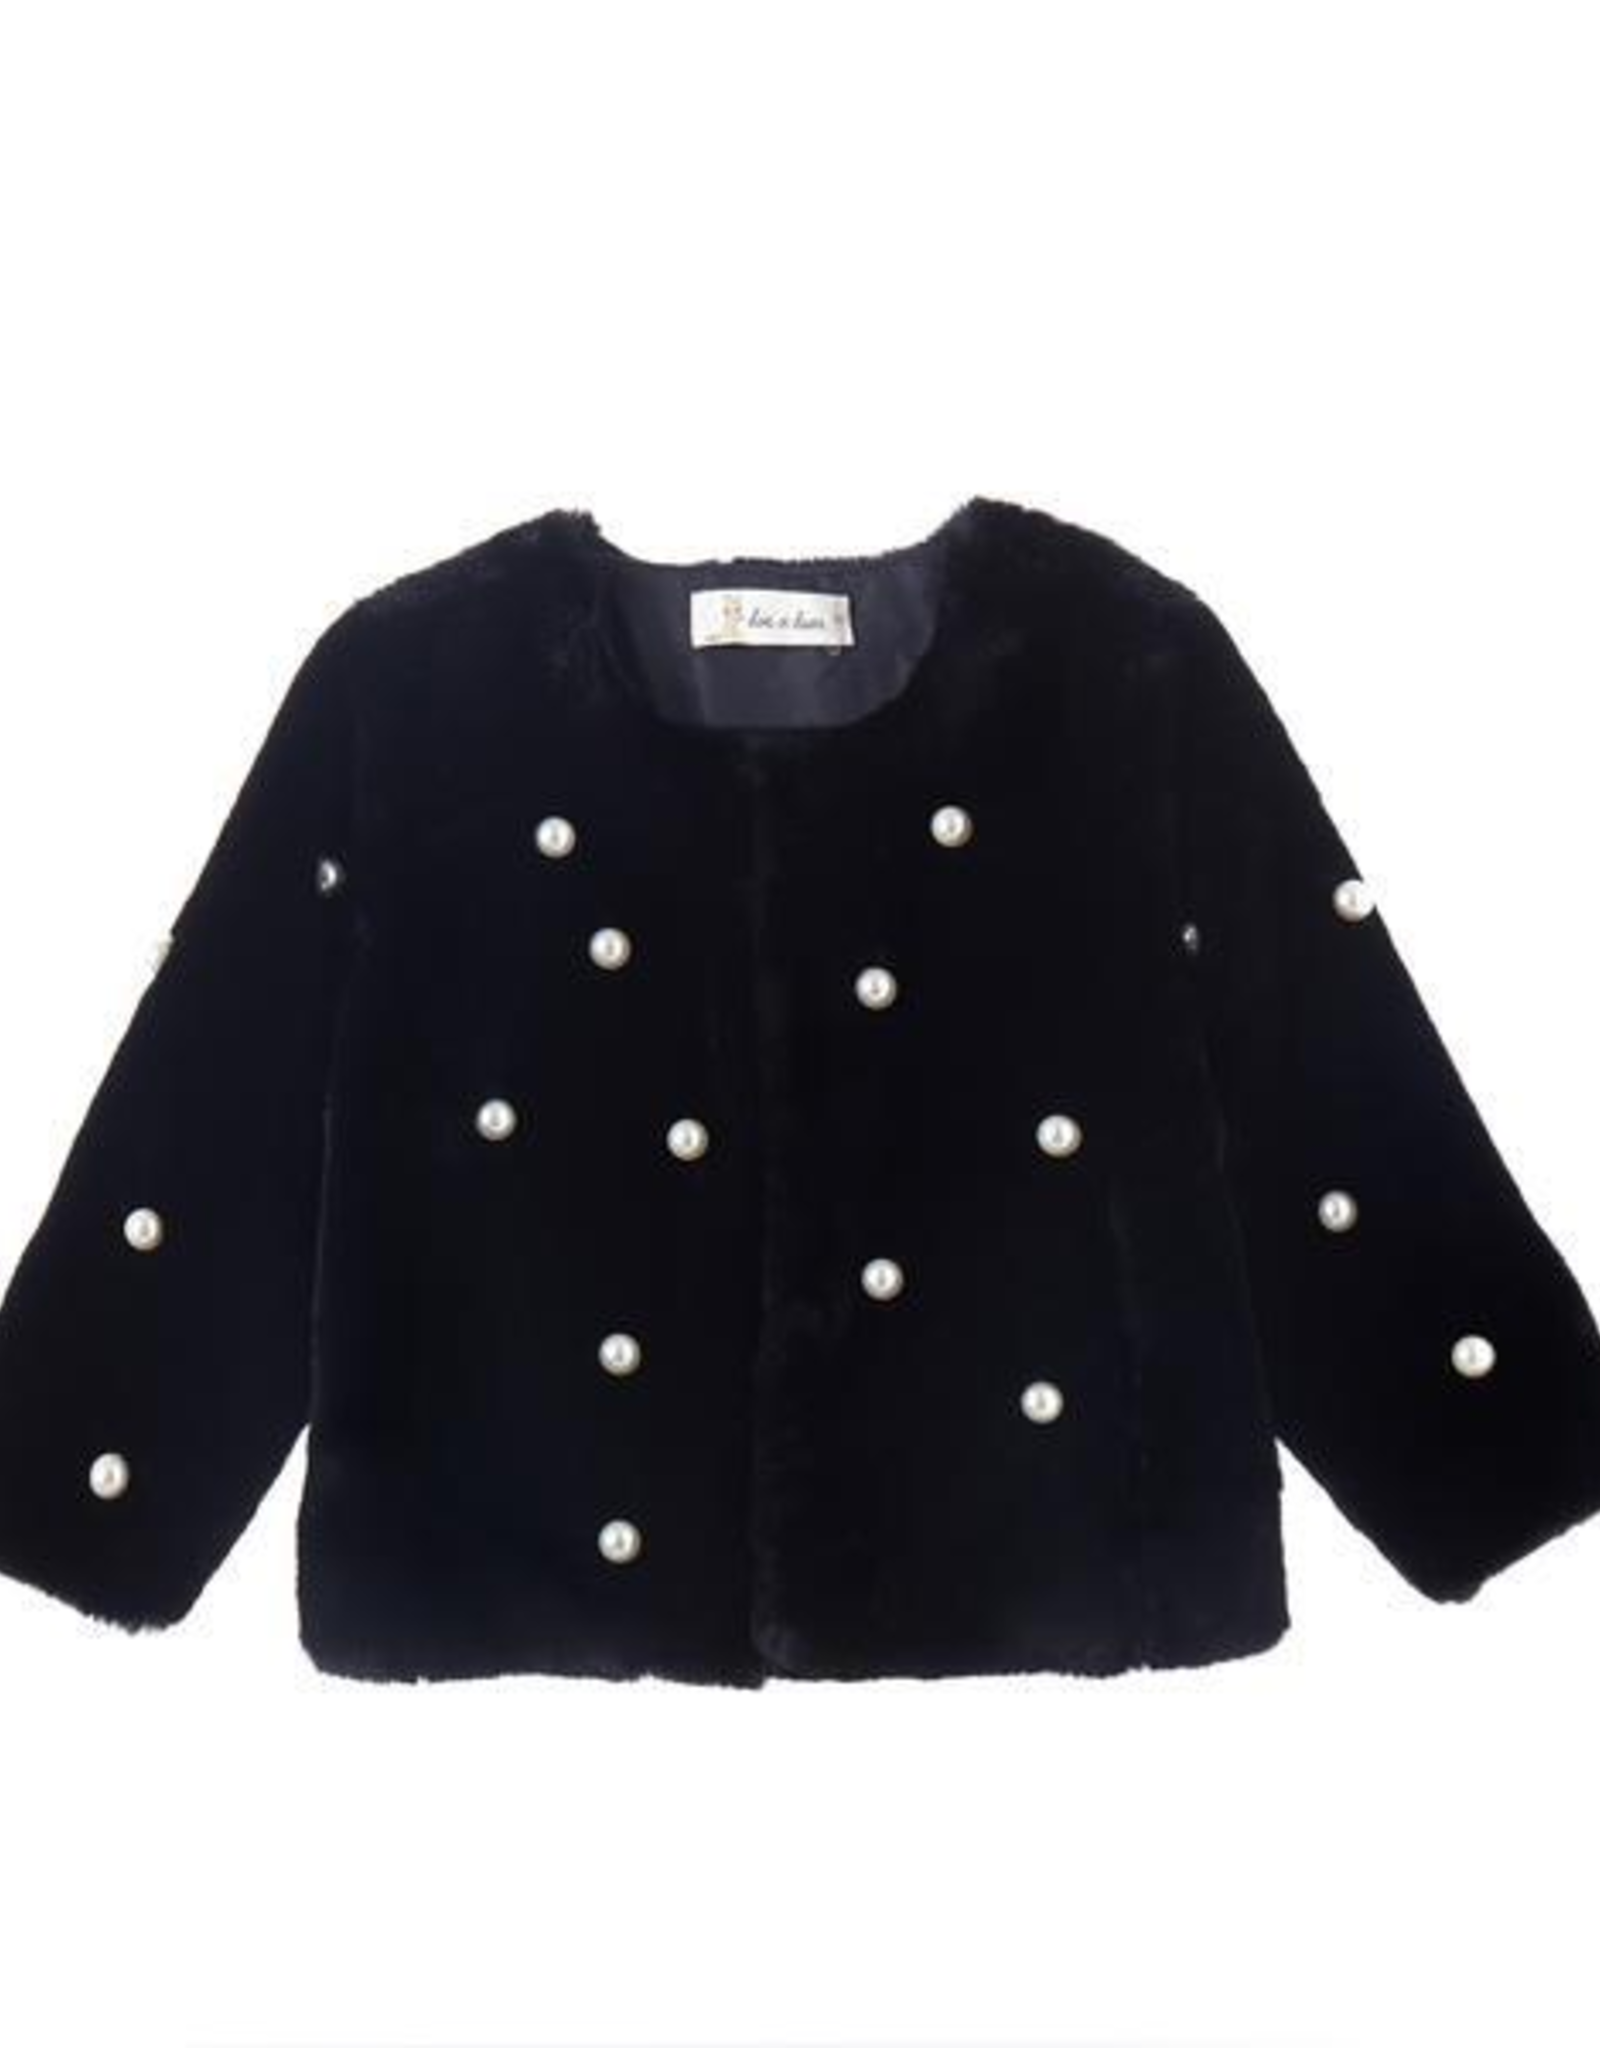 Doe a Dear Black Fur Coat w/Pearls